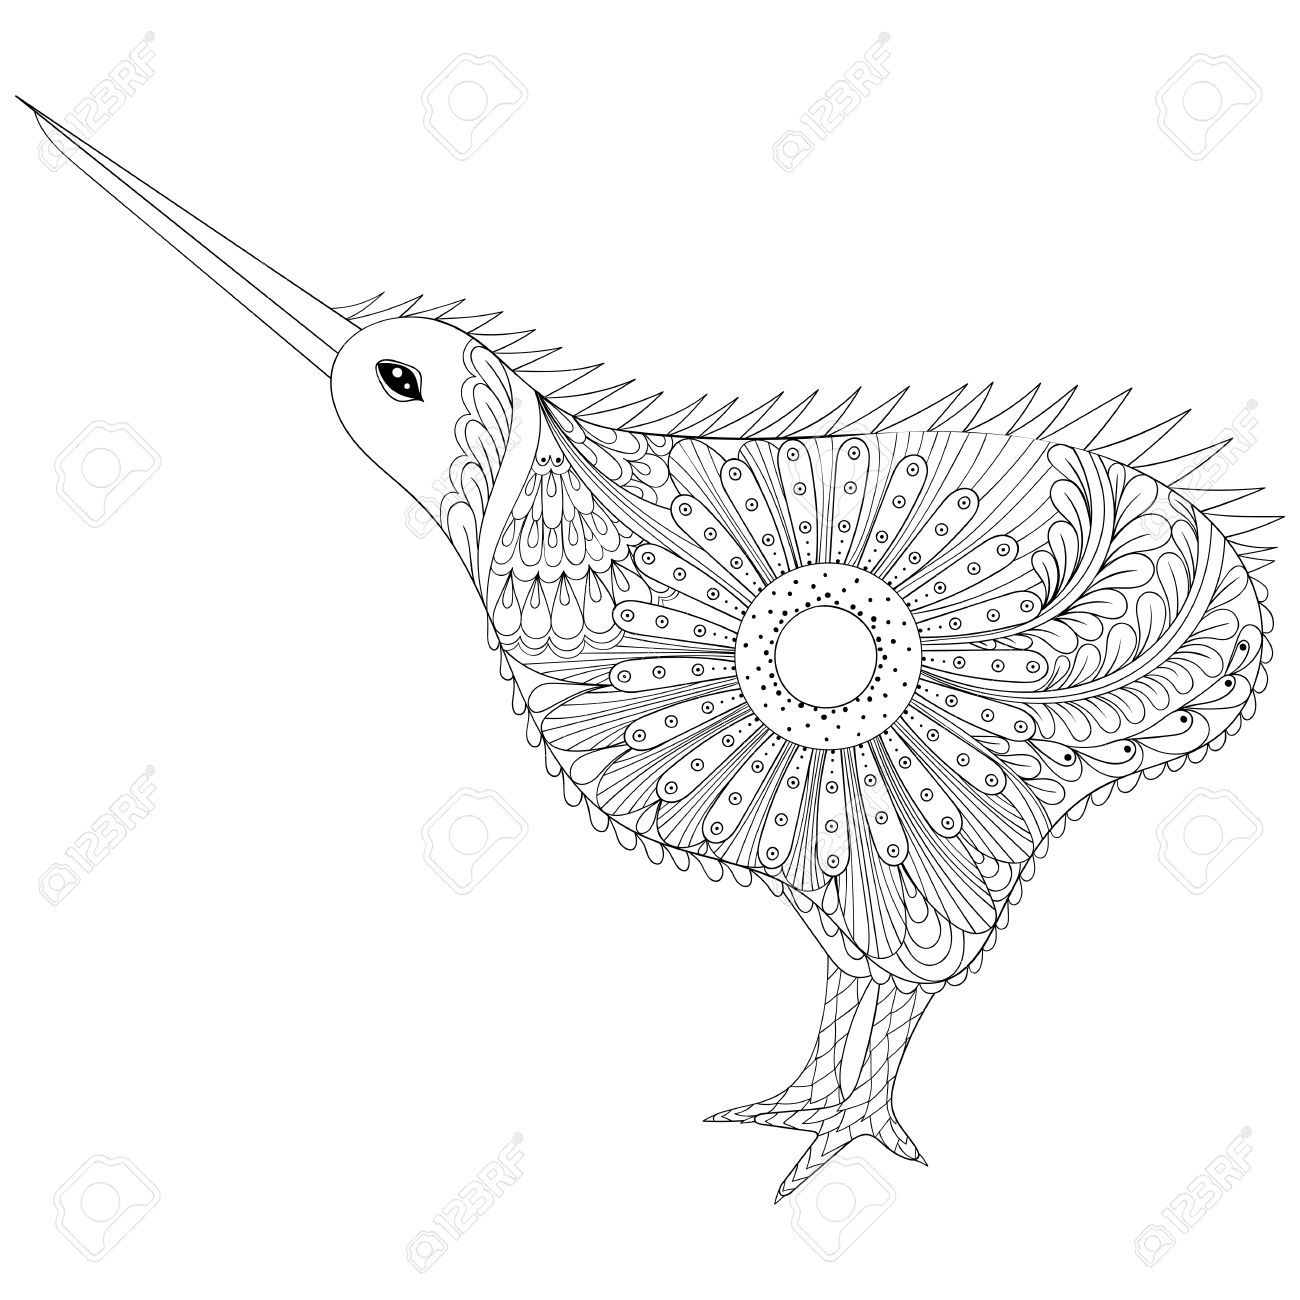 New Zealand Coloring Pages Coloring Pages New Zealand Tattoo Henna Tattoo Designs